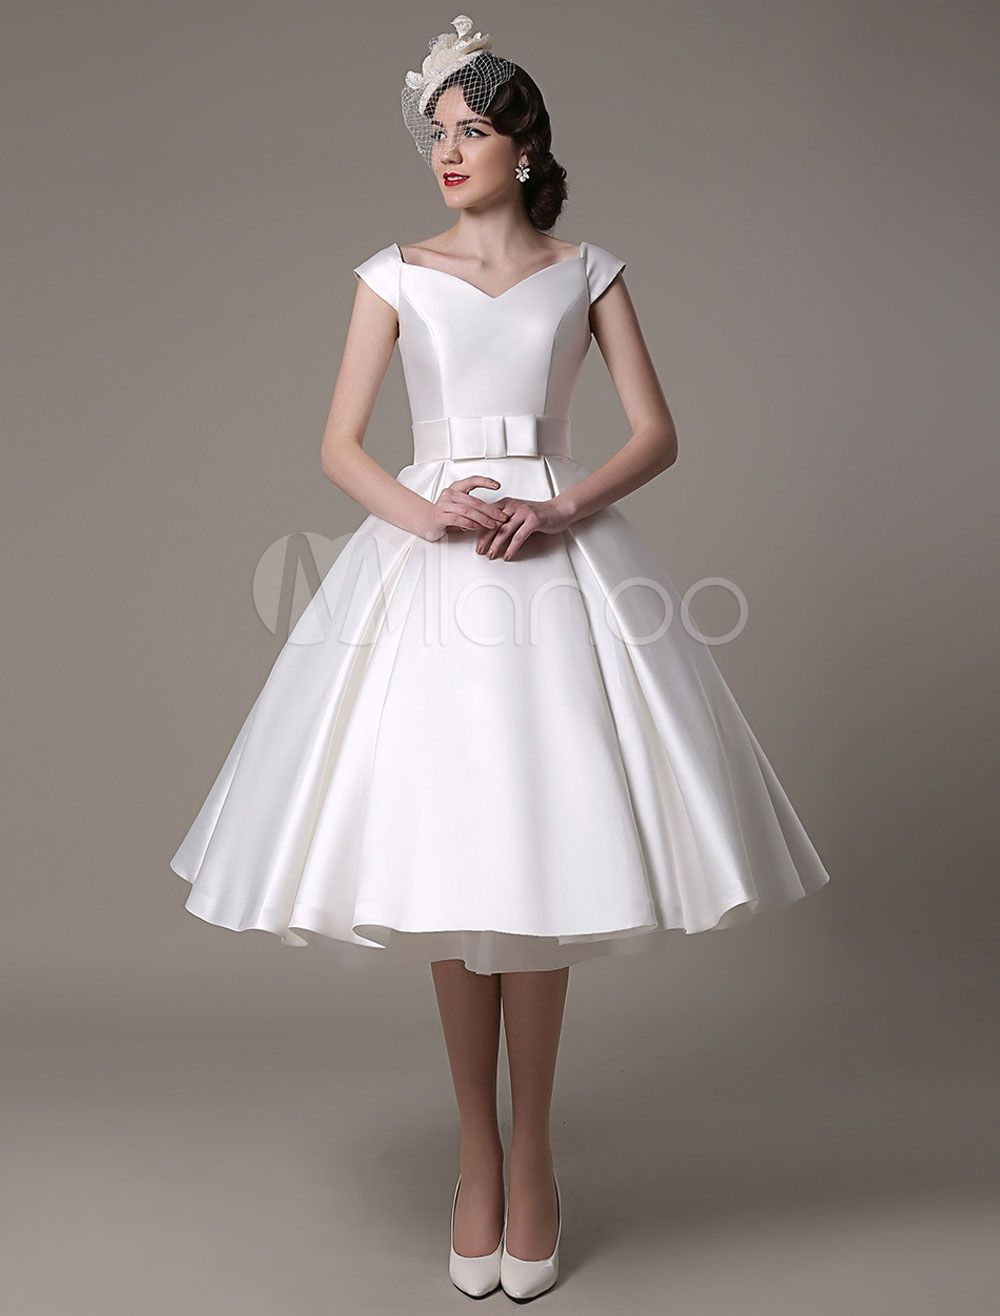 Ivory Wedding Dresses 2018 short satin Knee Length bow Sash retro ...